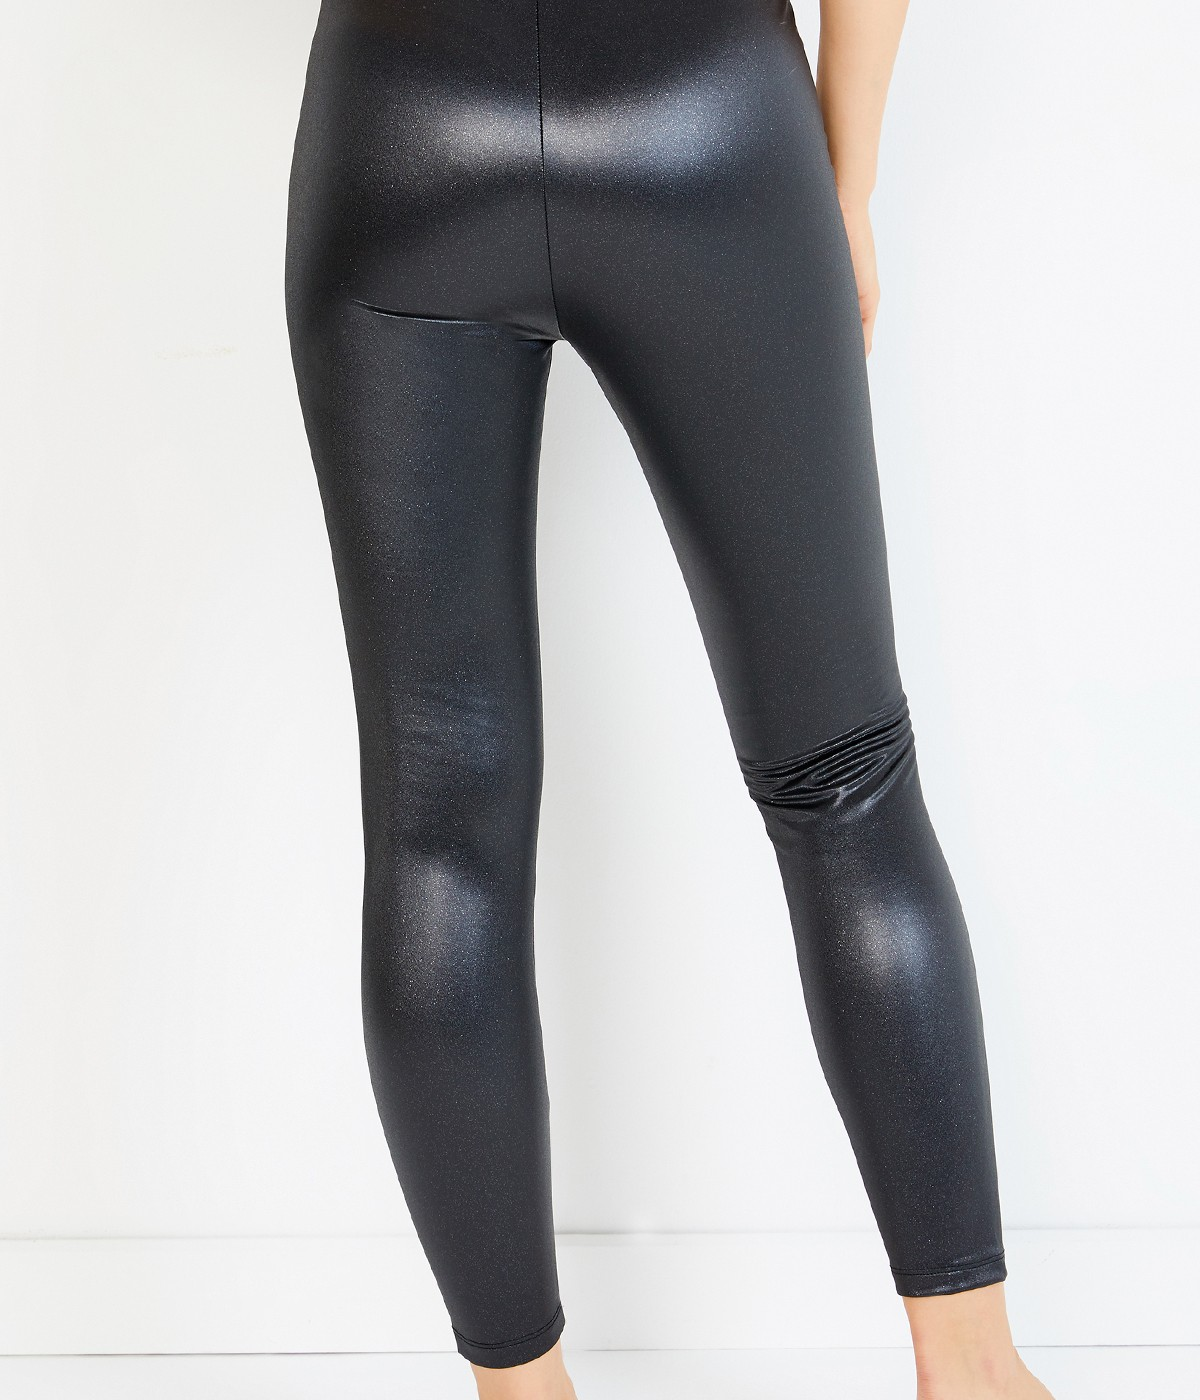 Leather Look Shiny Tights